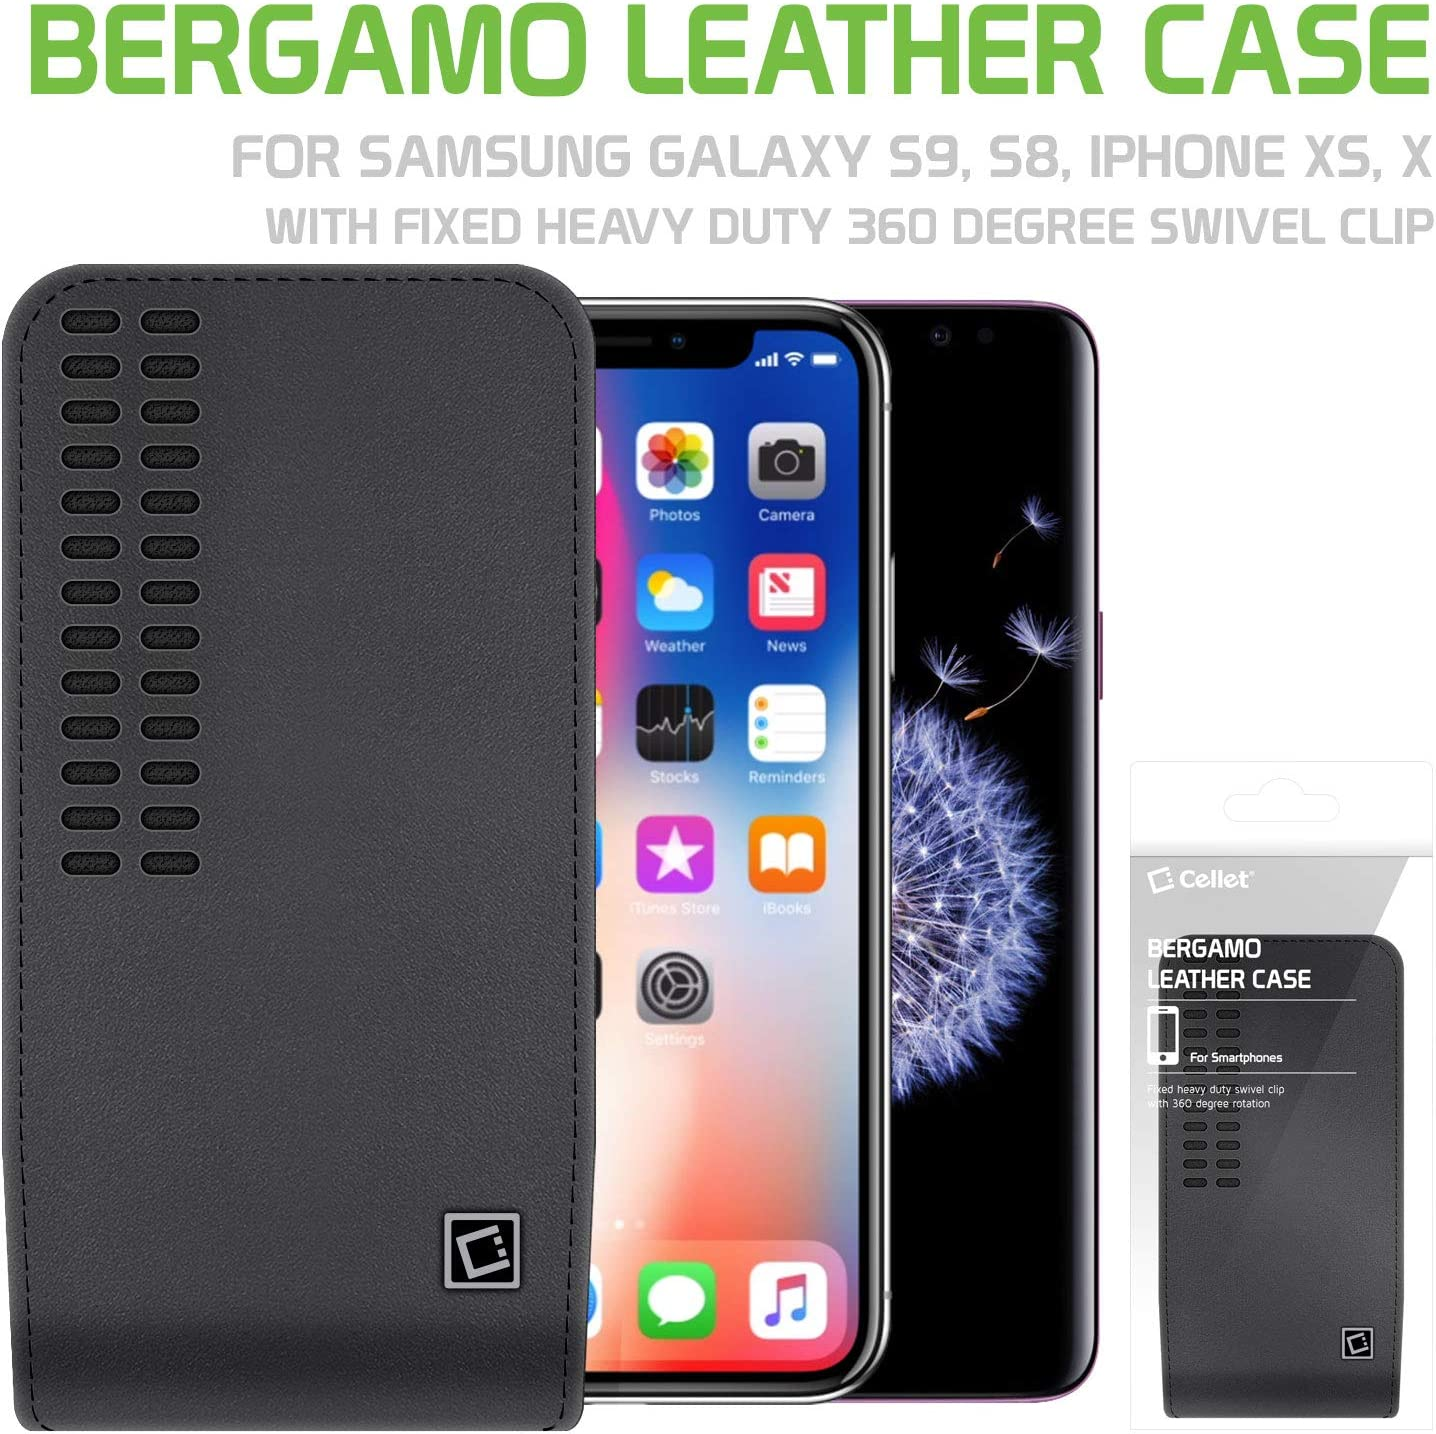 XS 8 7 6S 6 Samsung Galaxy S20 S10 S9 S8 S7 Google Pixel 4 3 2 1 Cellet Bergamo Leather Pouch Open Top Holster Case Heavy Duty 360 Swivel Belt Clip Compatible with Apple iPhone 11 Pro X